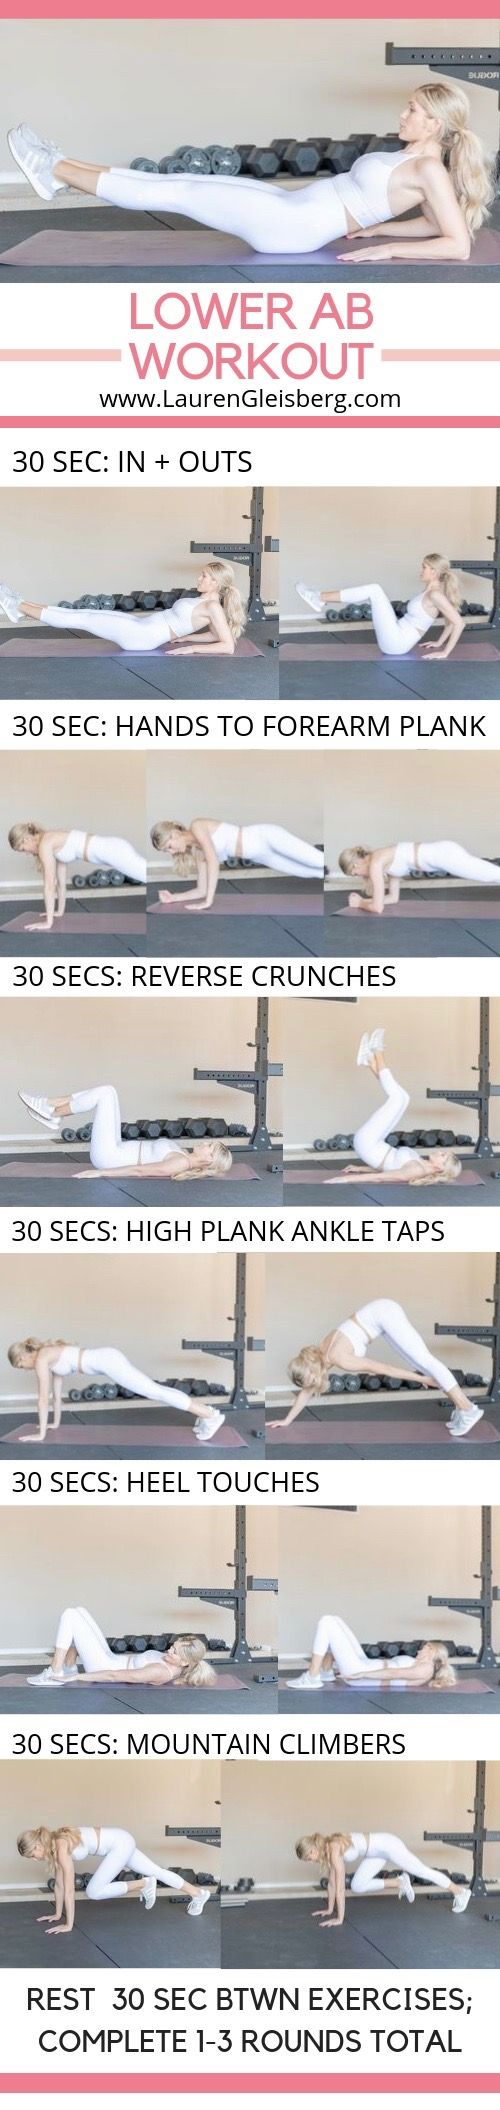 BEST LOWER AB WORKOUT THAT ONLY TAKES 6 MINUTES - Lauren Gleisberg